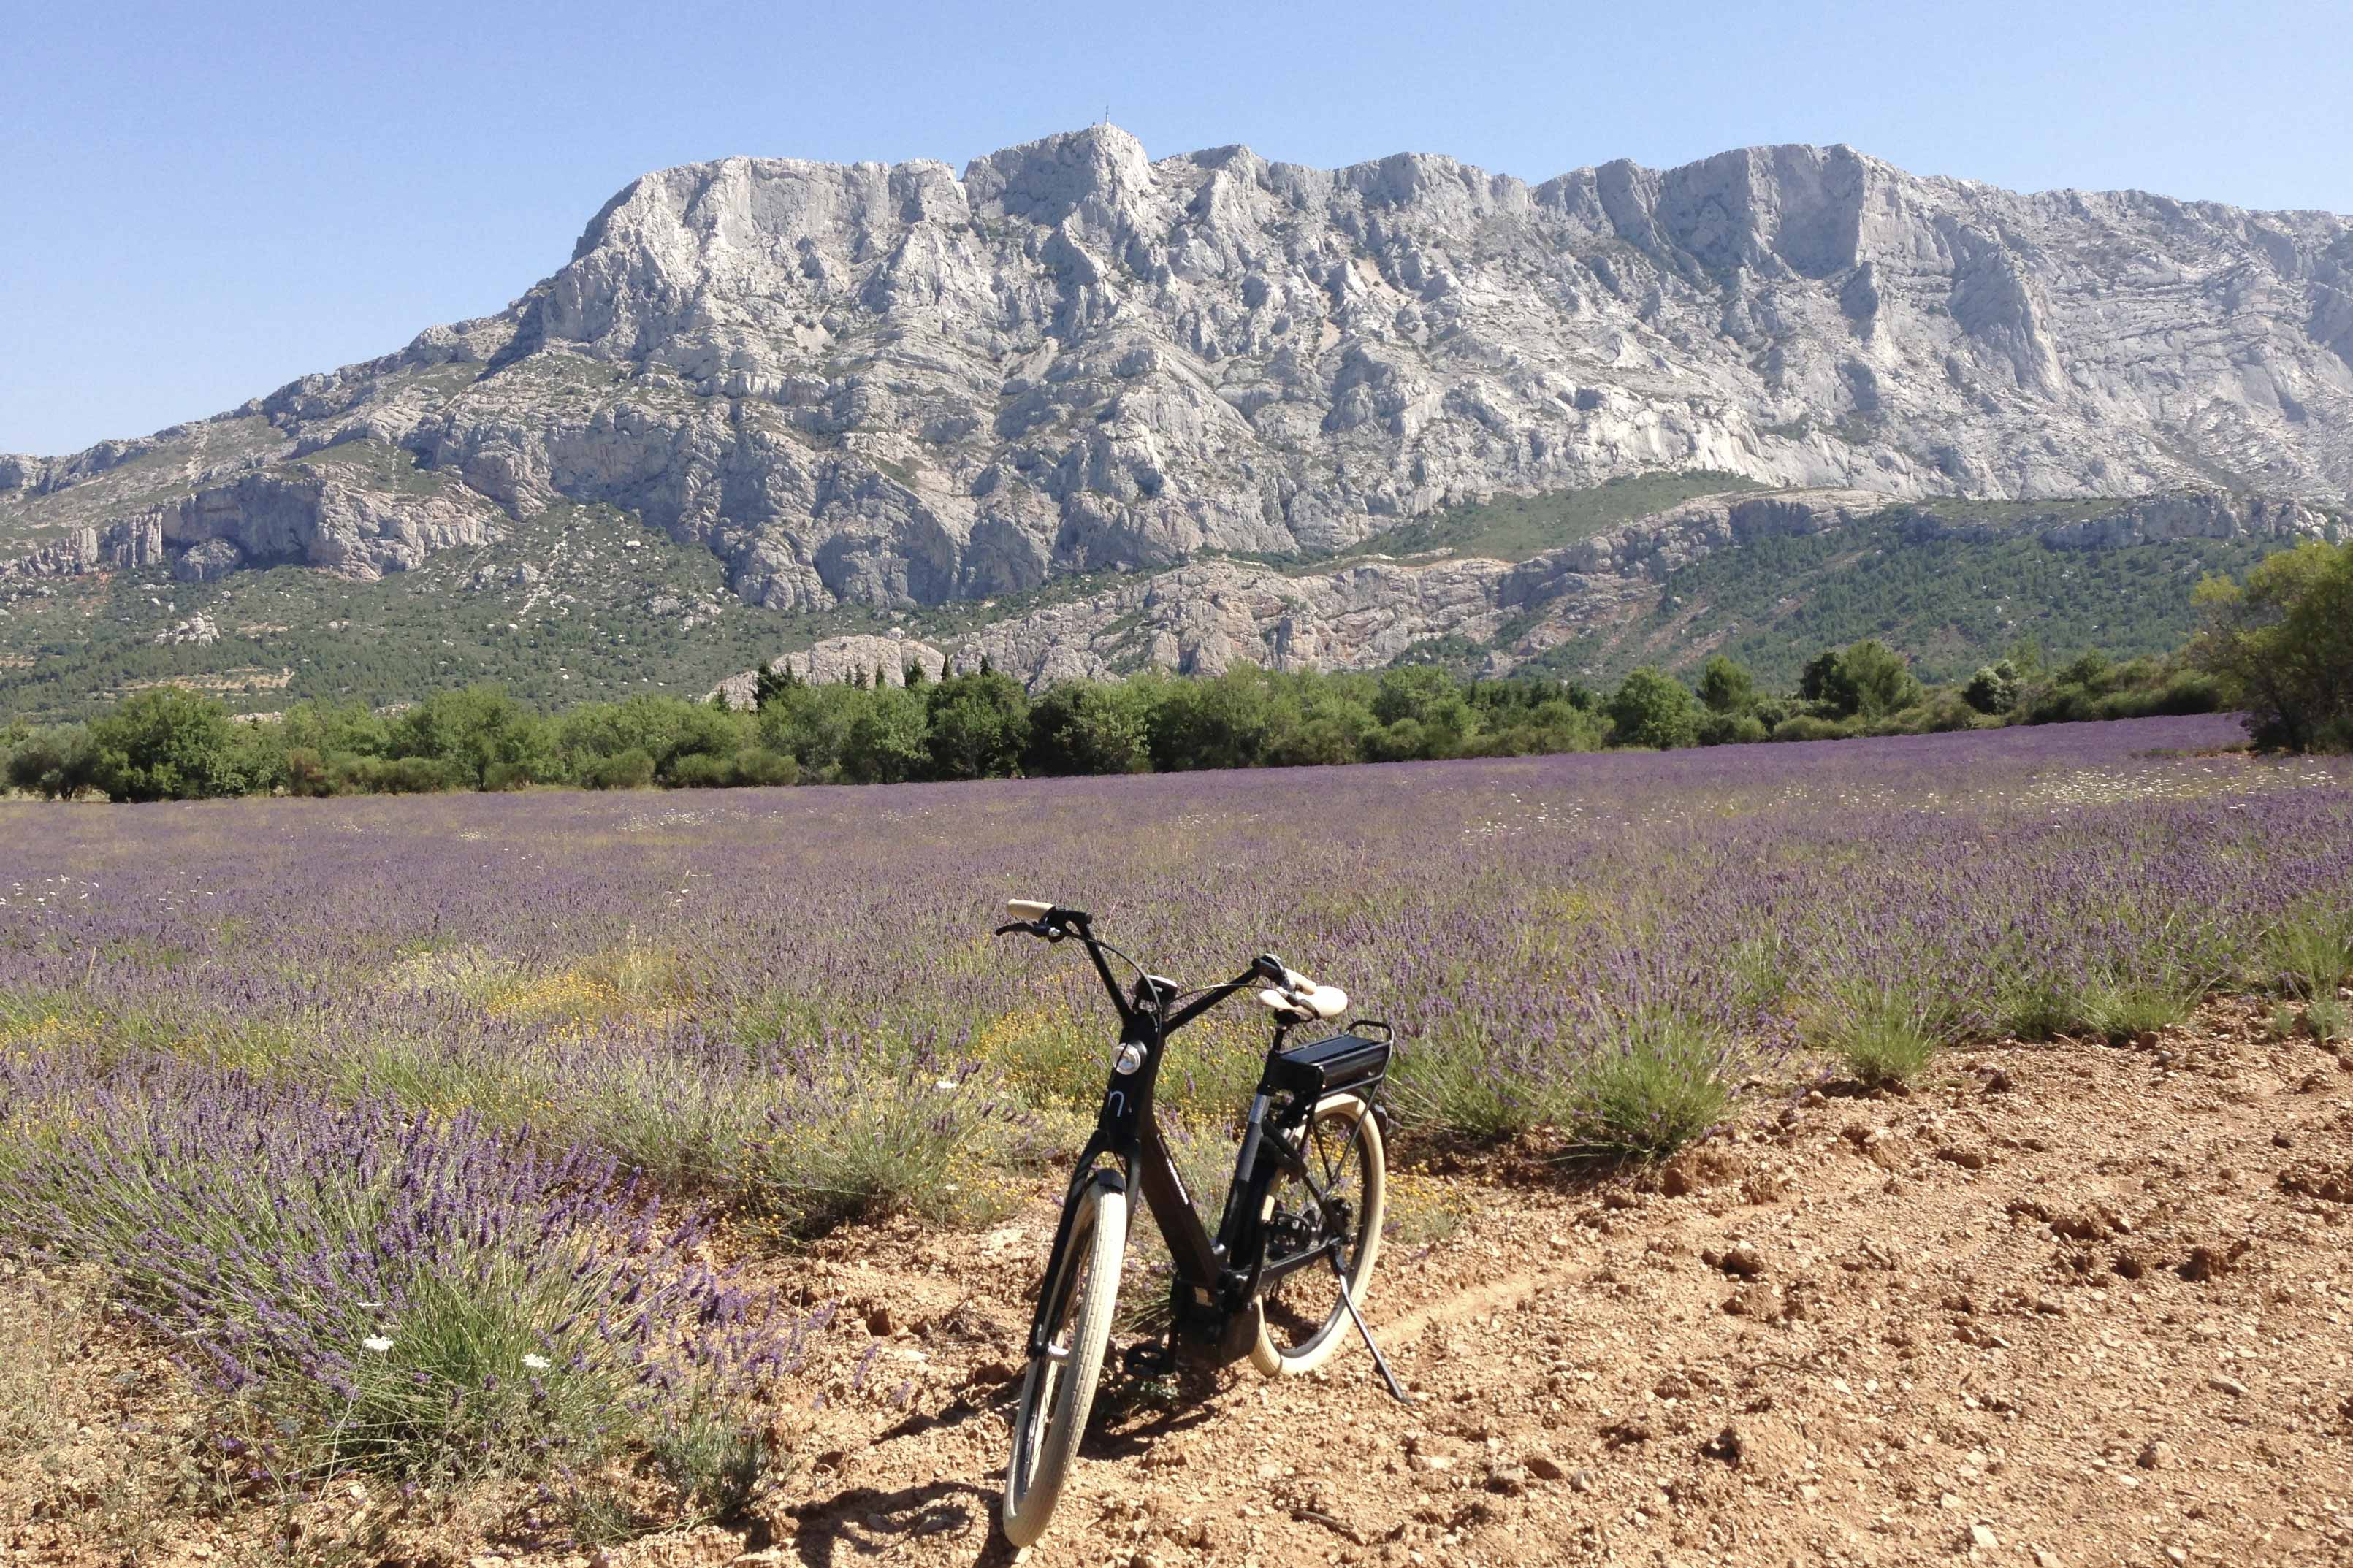 Wine and bike excursion, lavender field and Mount Sainte Victoire